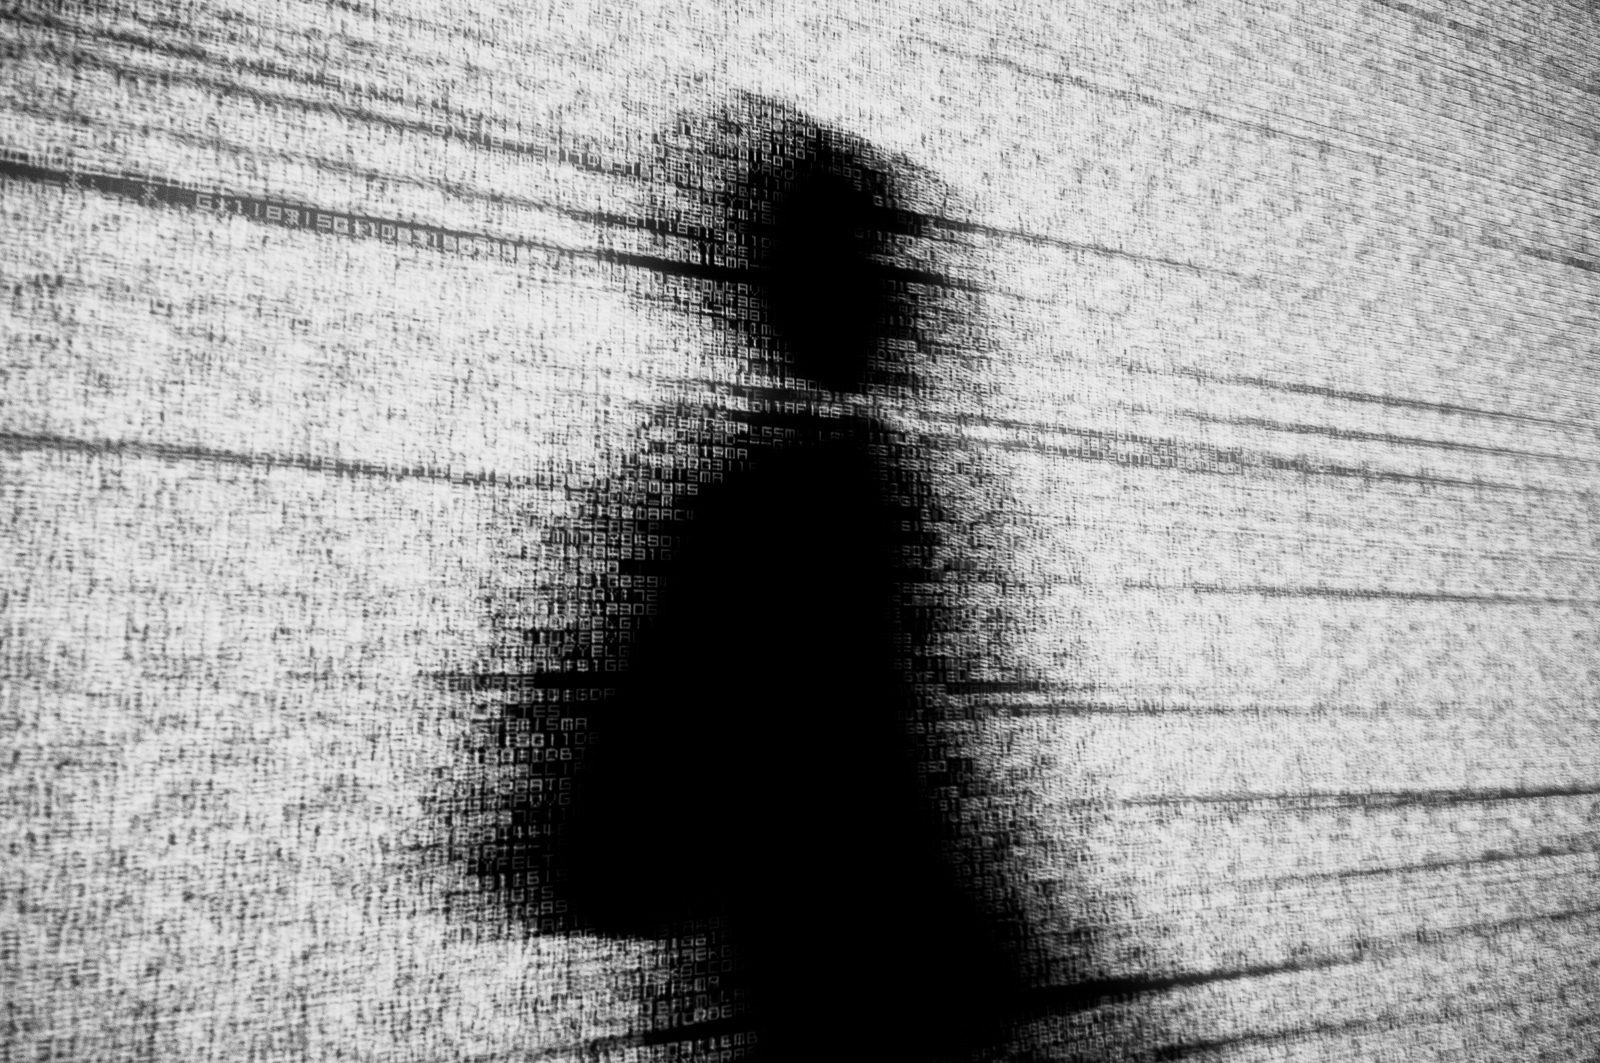 Shadow App Development: Insider Threat or Opportunity?